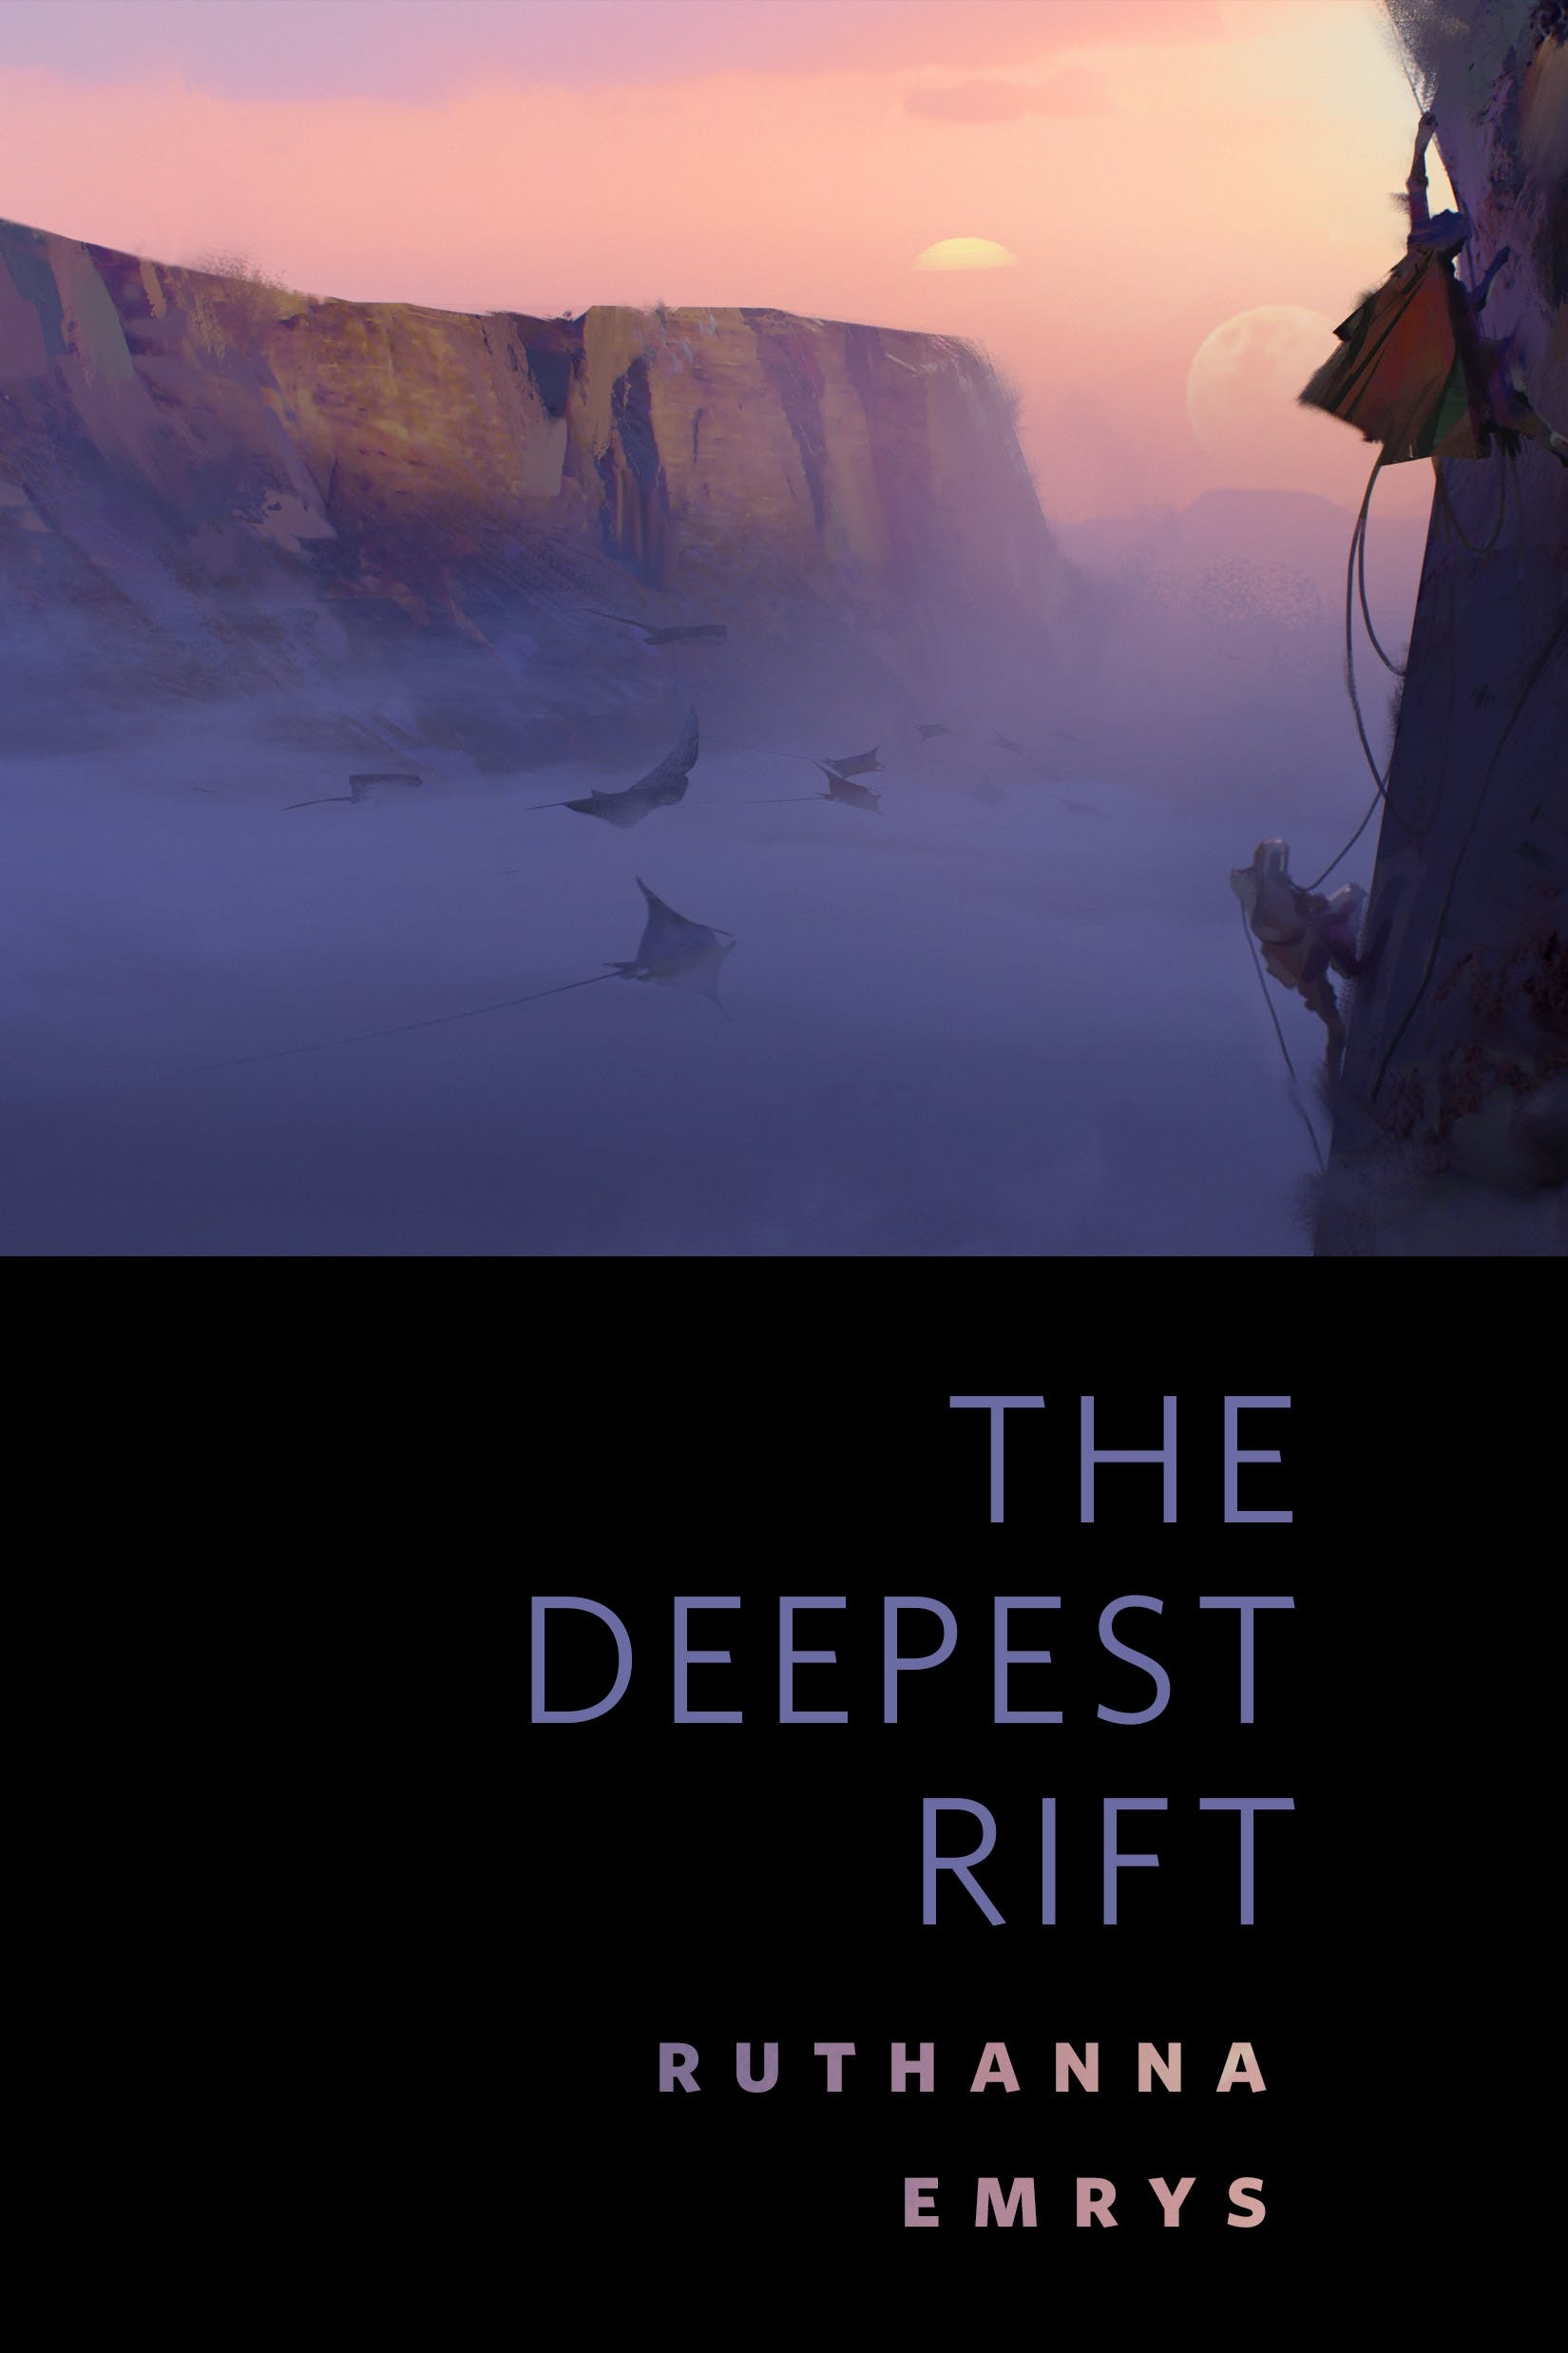 Image of The Deepest Rift